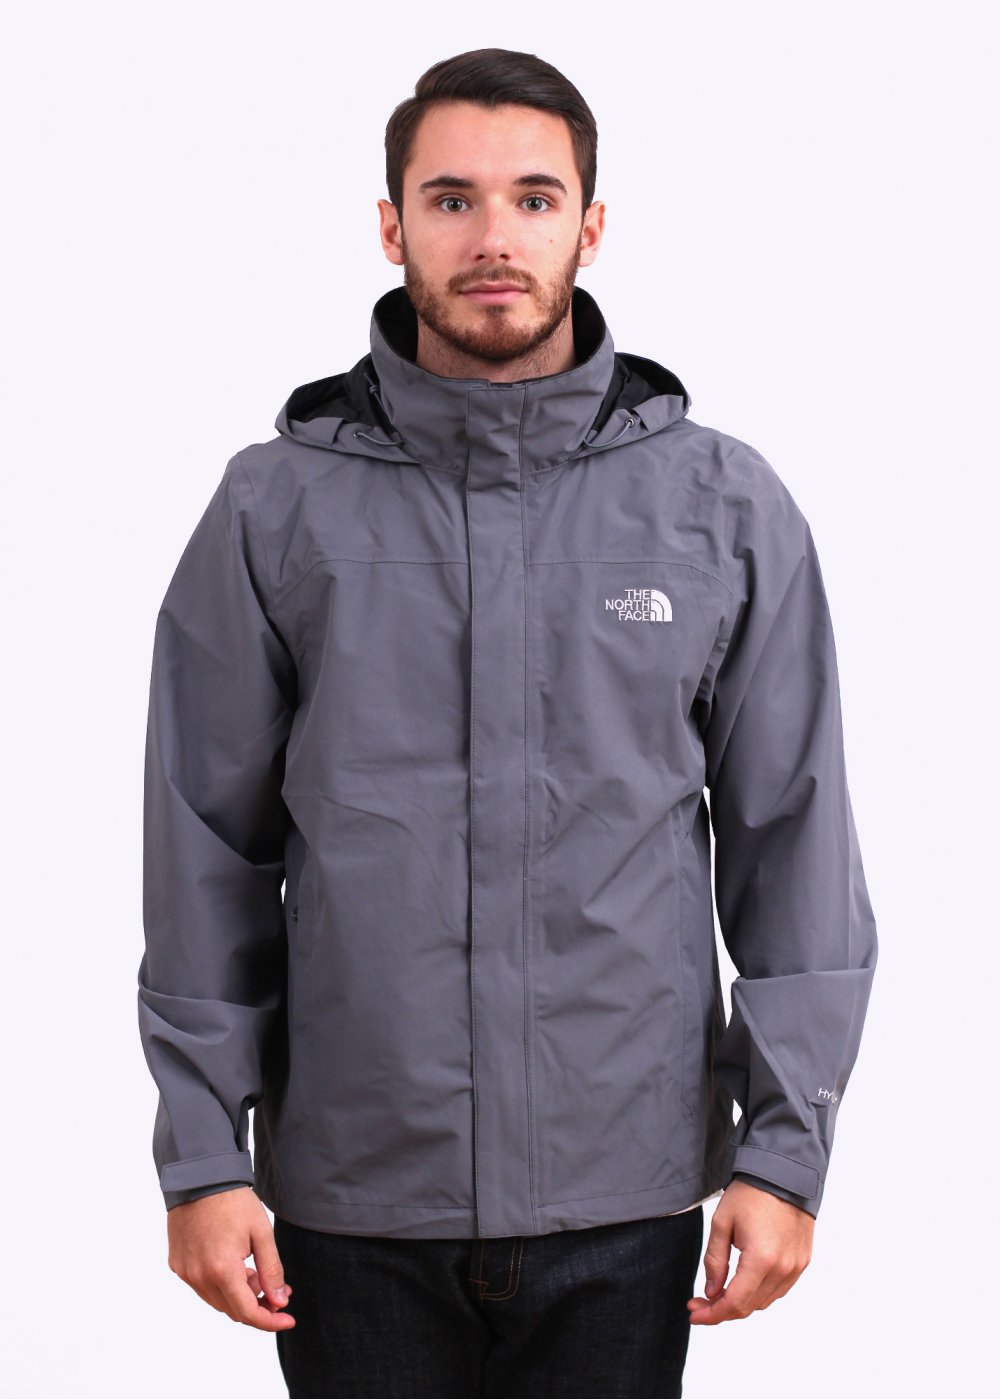 7f9ed2cfe871 The North Face Sangro Jacket - Vanadis Grey